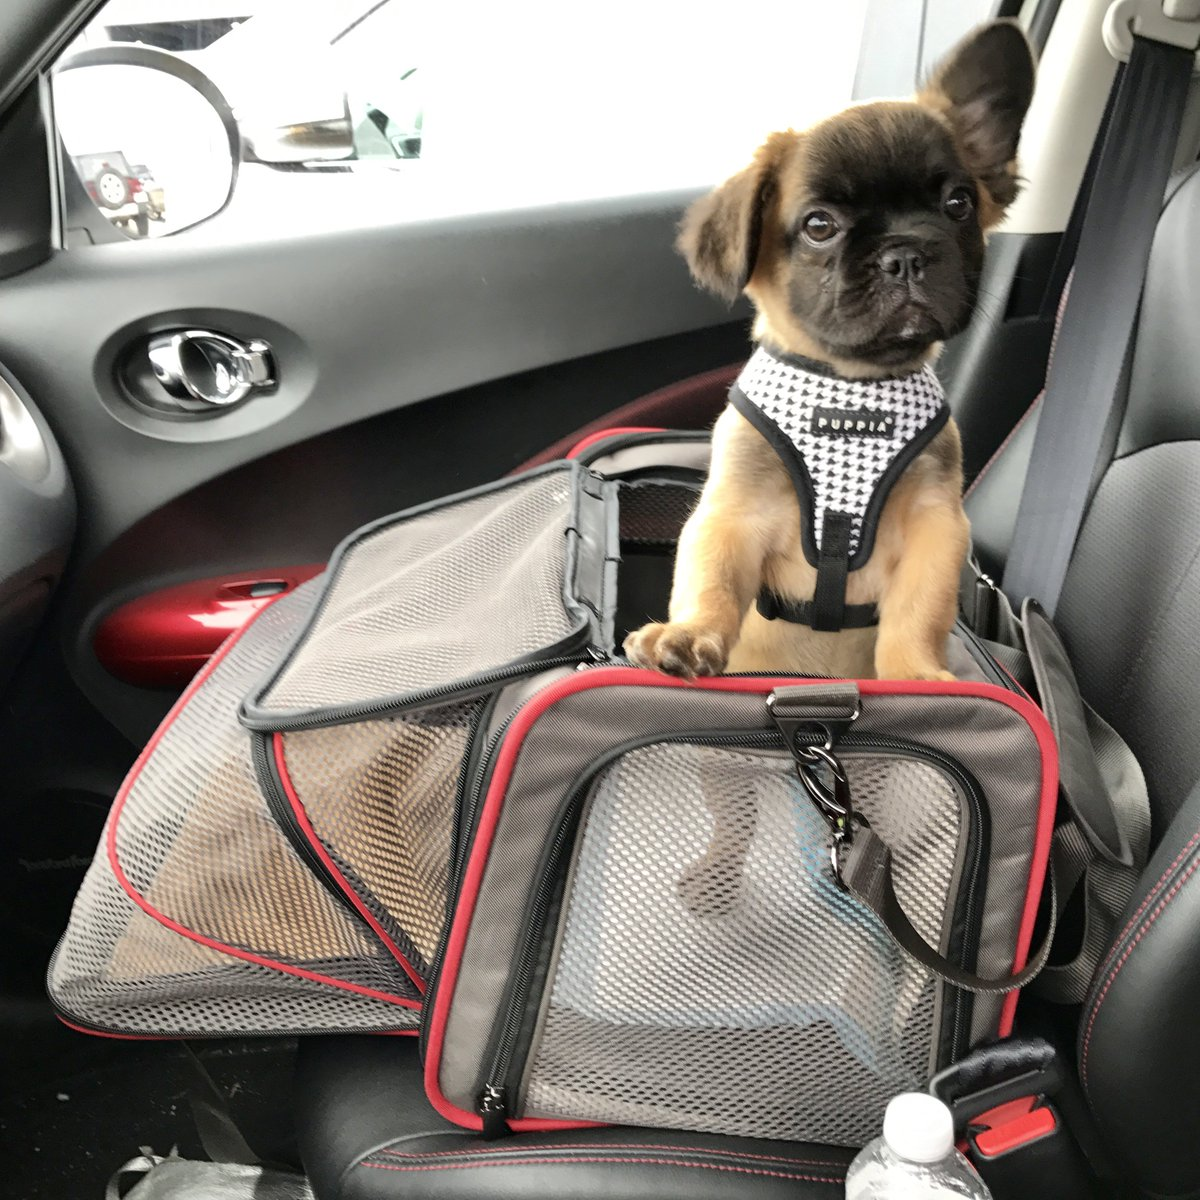 ESSENTIAL PET TRAVEL PRODUCTS  http:// ow.ly/4TBy50qG0Cs  &nbsp;   I've been traveling with dogs for over 15 years now. Planning what to bring is always a challenge, but I've found a few items that are essential when packing for a pup.  #dogtravel <br>http://pic.twitter.com/v4Yjiyxyv2